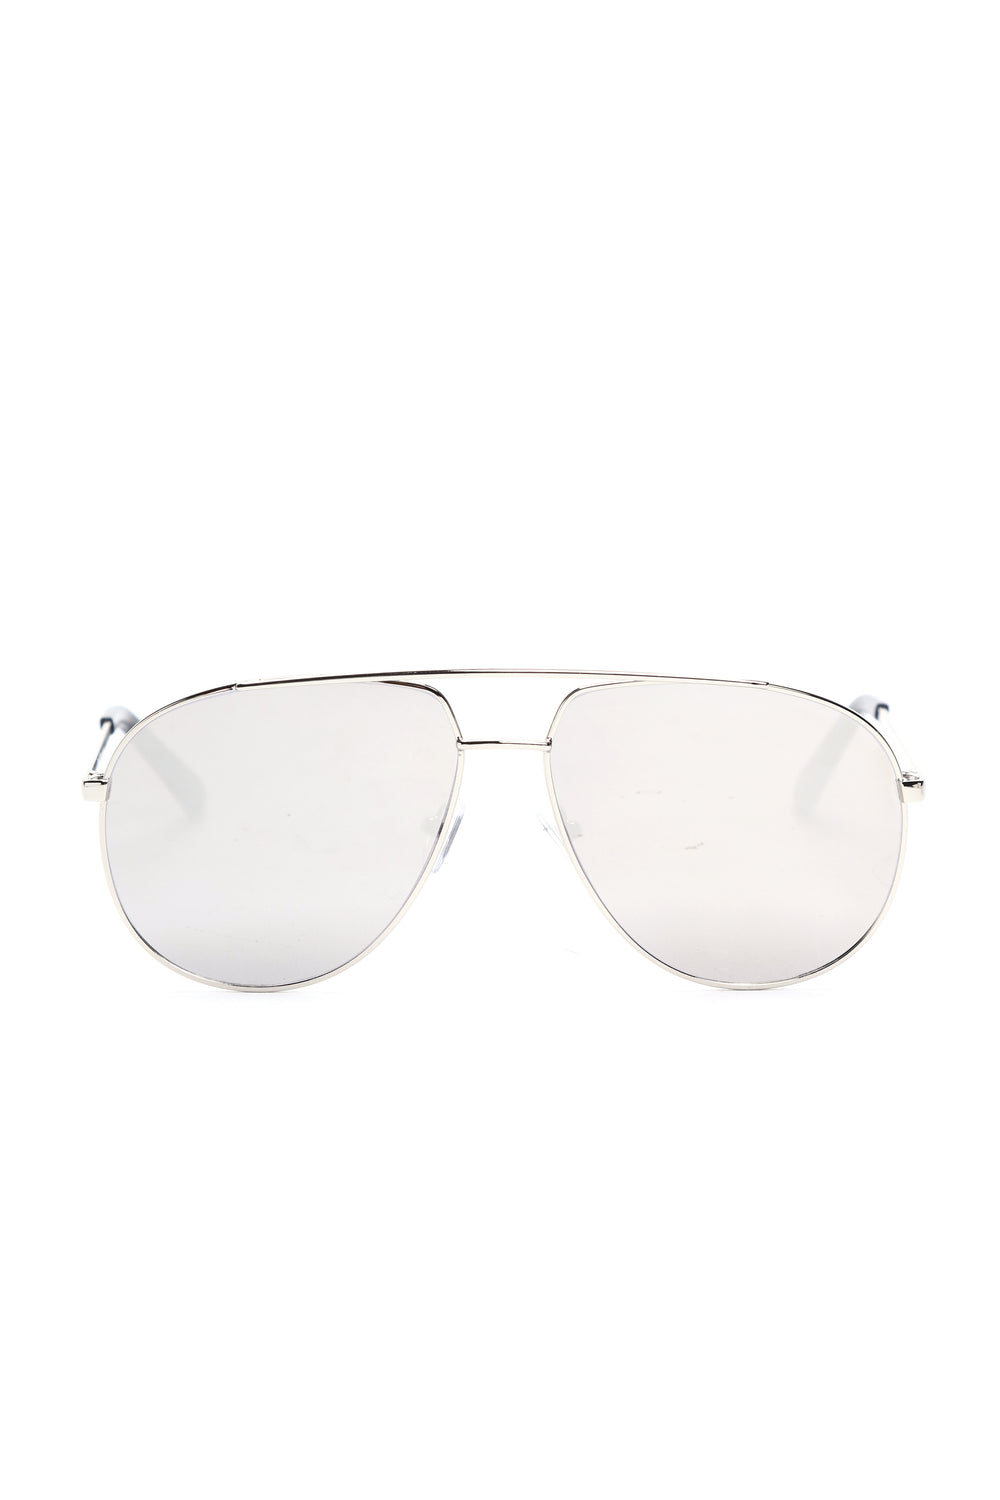 The Maverick Sunglasses - Silver